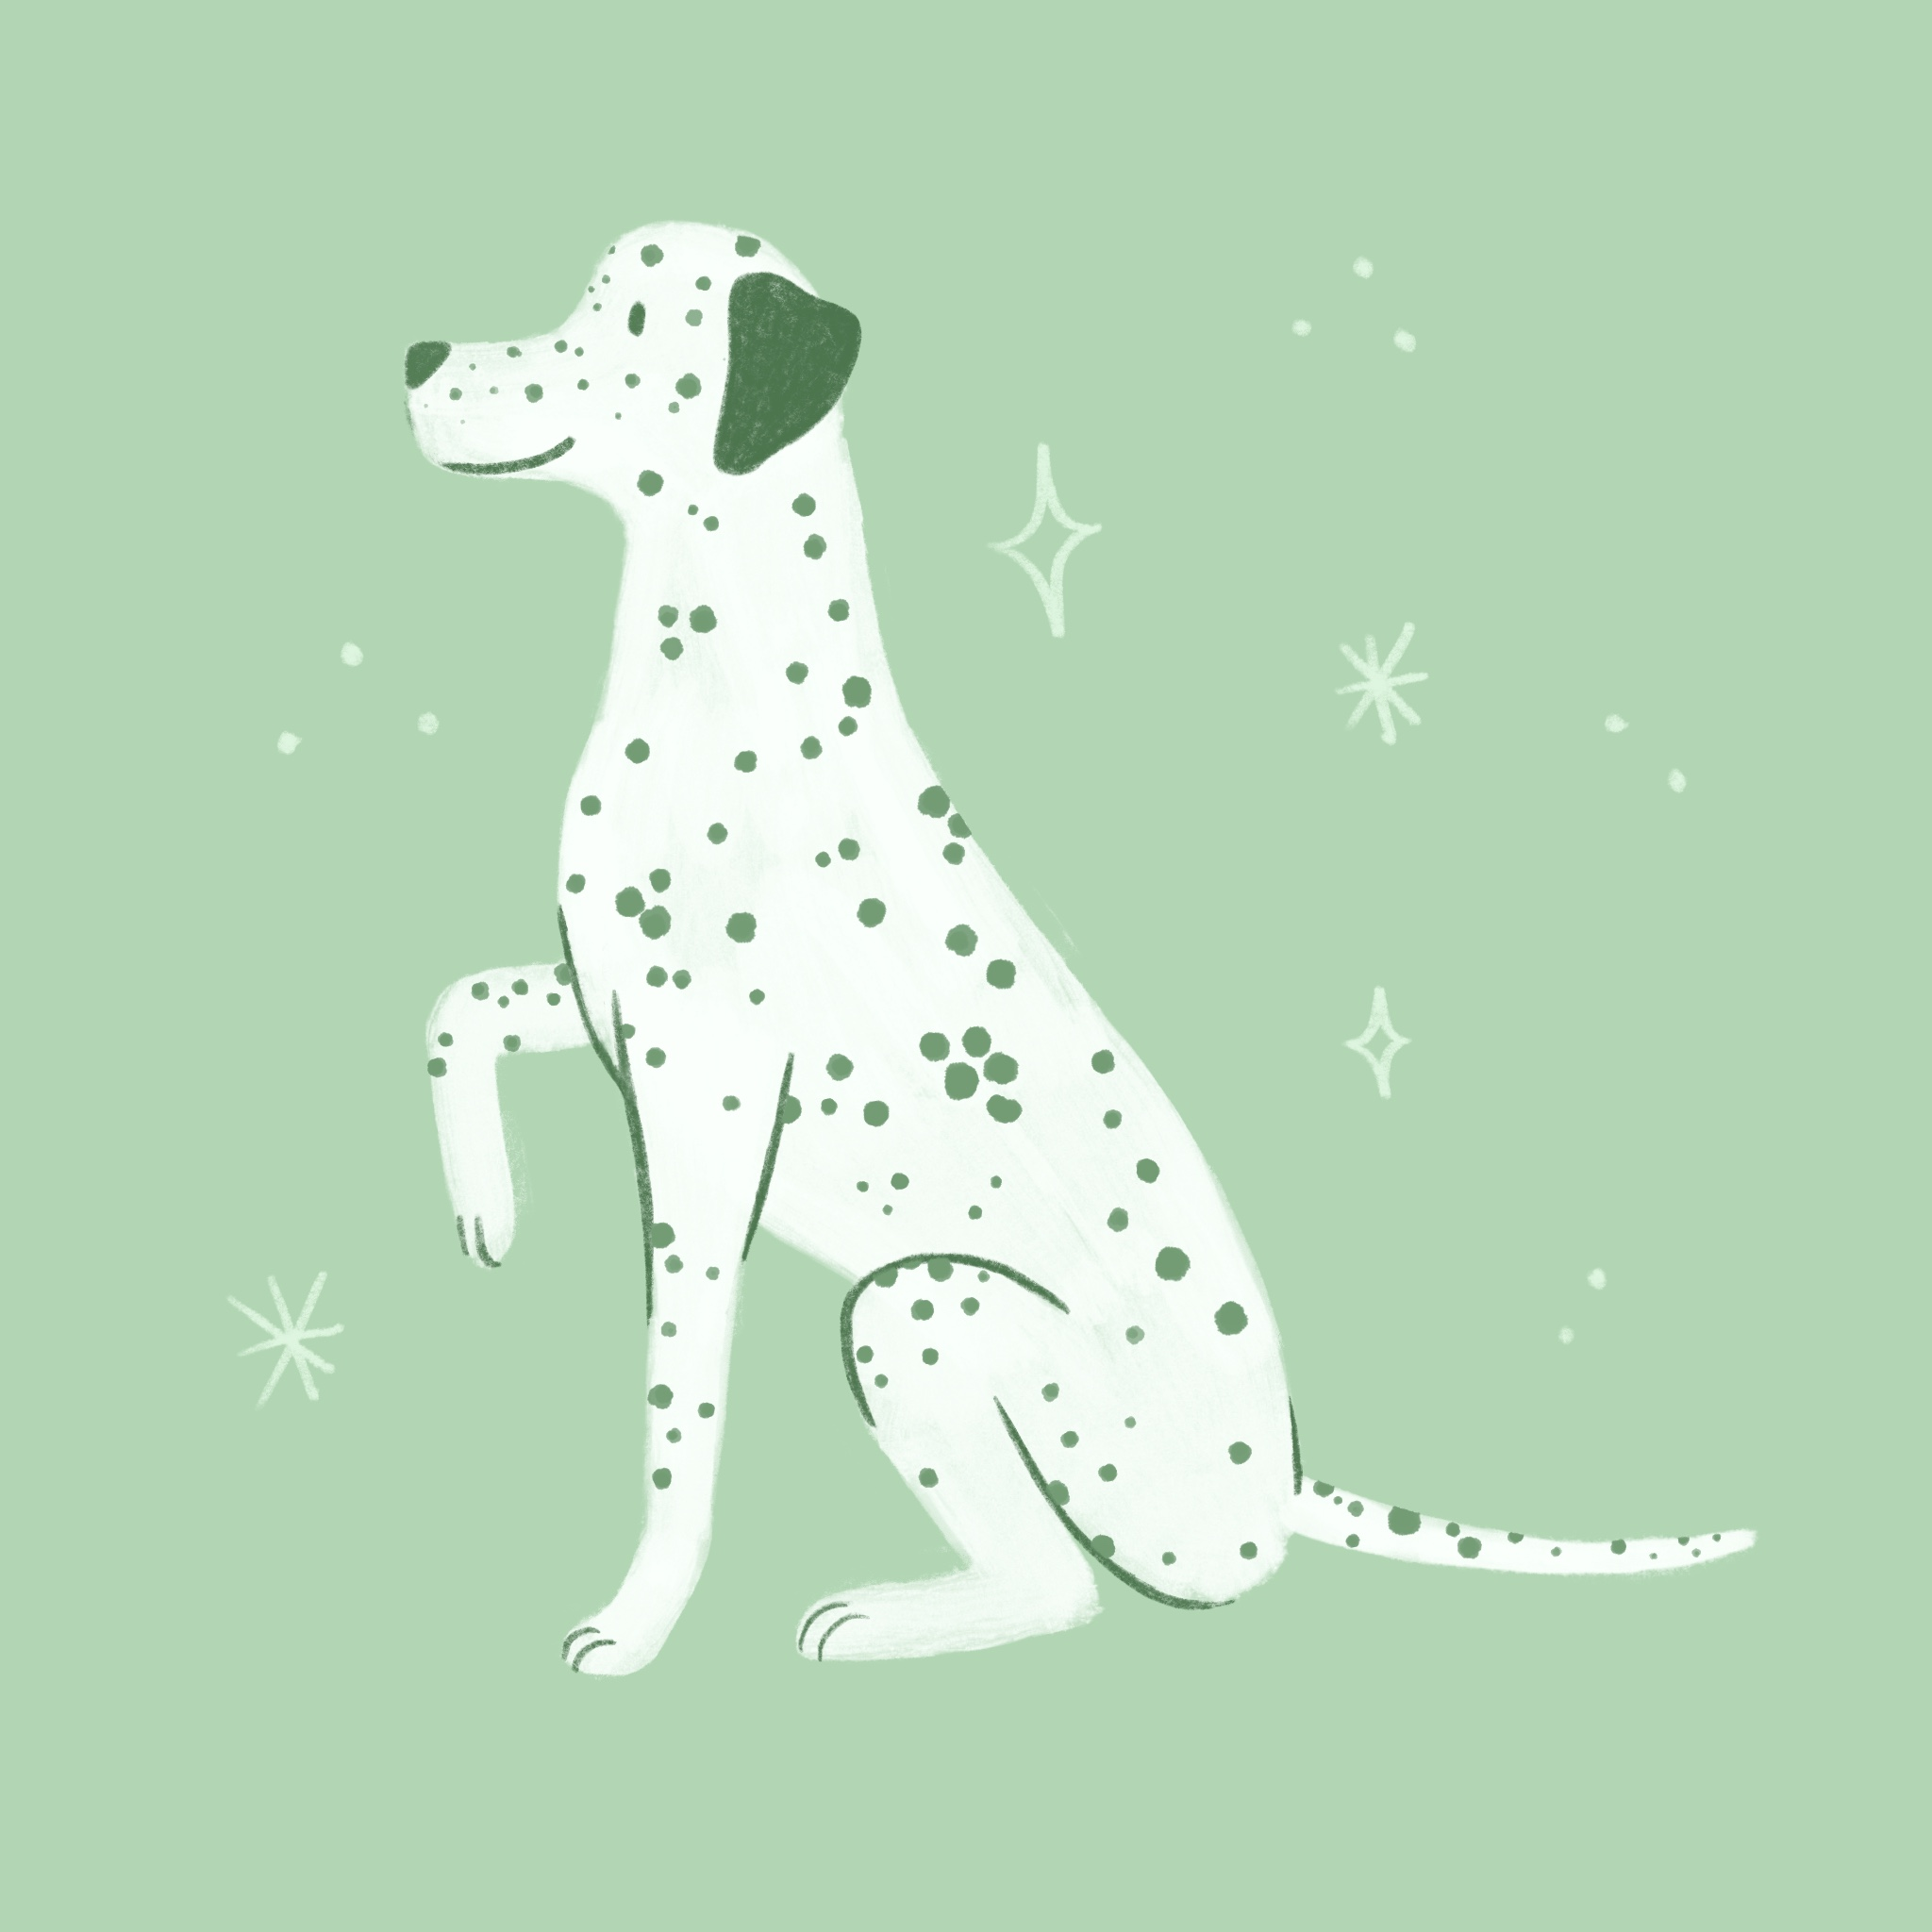 An illustration of a Dalmatian dog